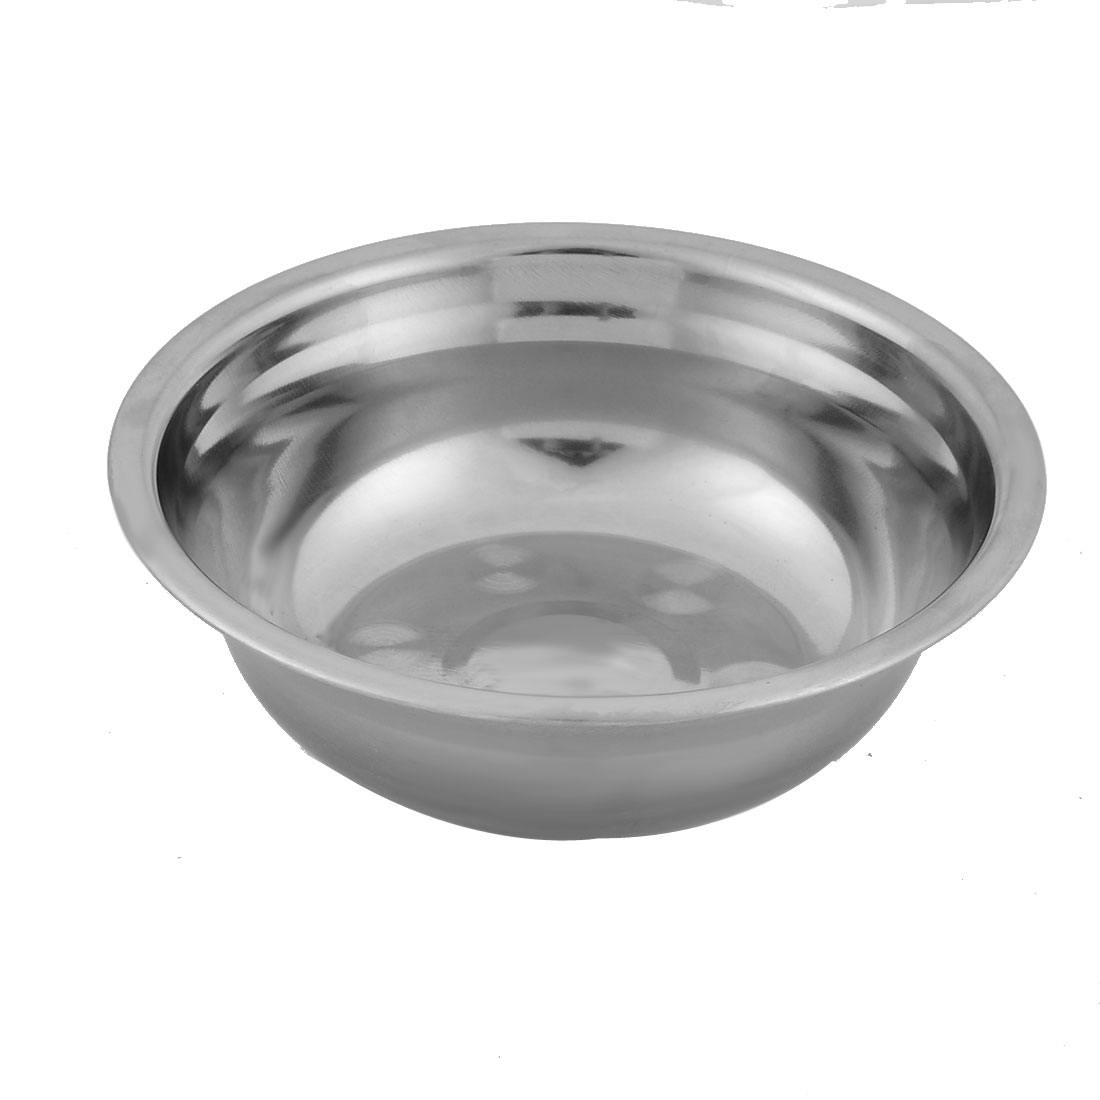 Household Kitchen Stainless Steel Fruit Soup Rice Dinner Bowl 13cm Diameter Silver Tone